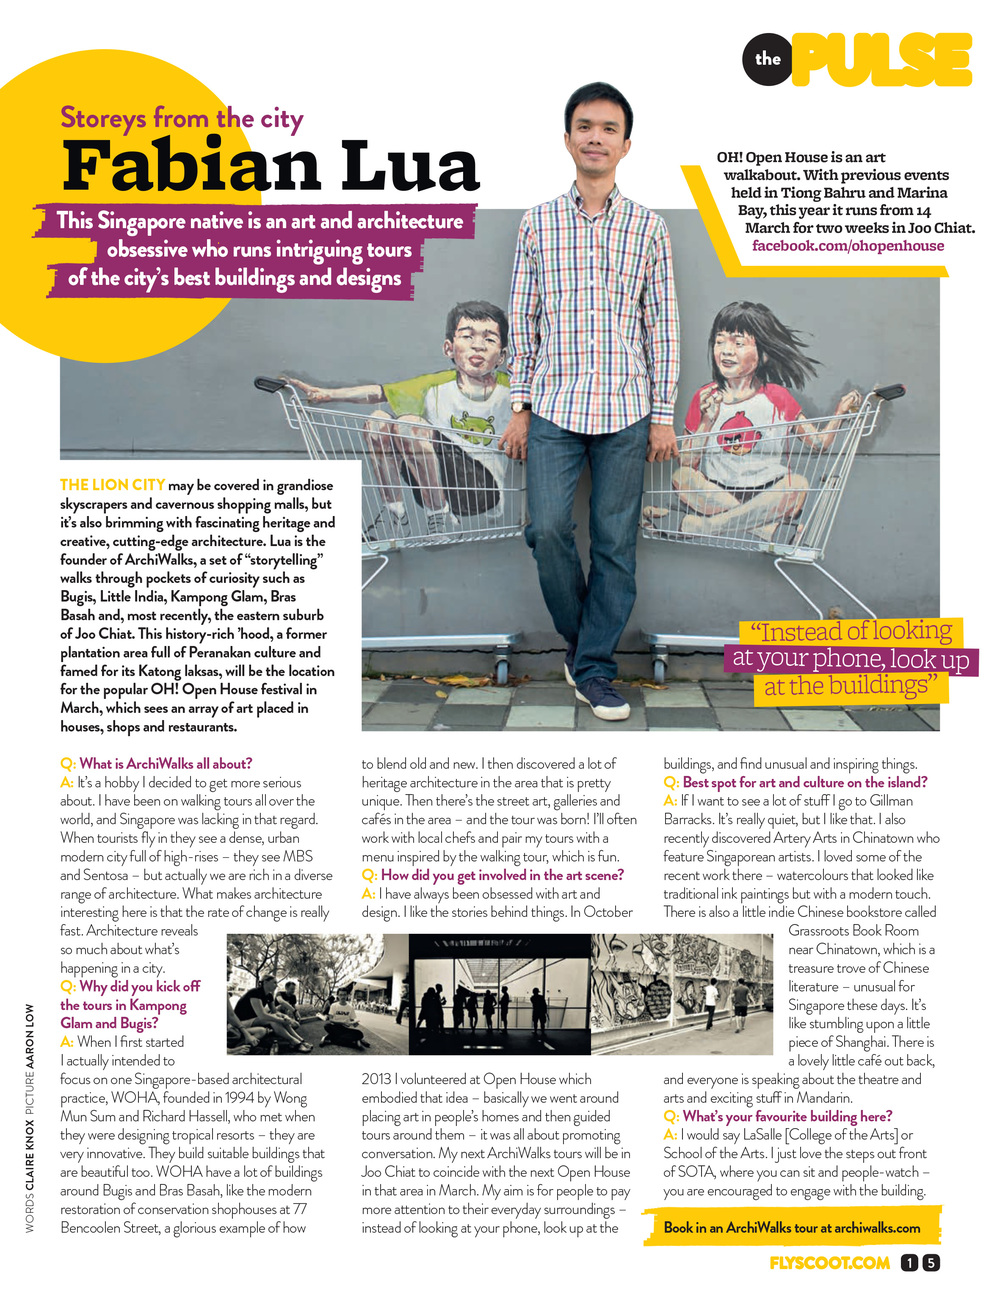 Interview on Scoot Magazine, the inflight magazine of Scoot airline.